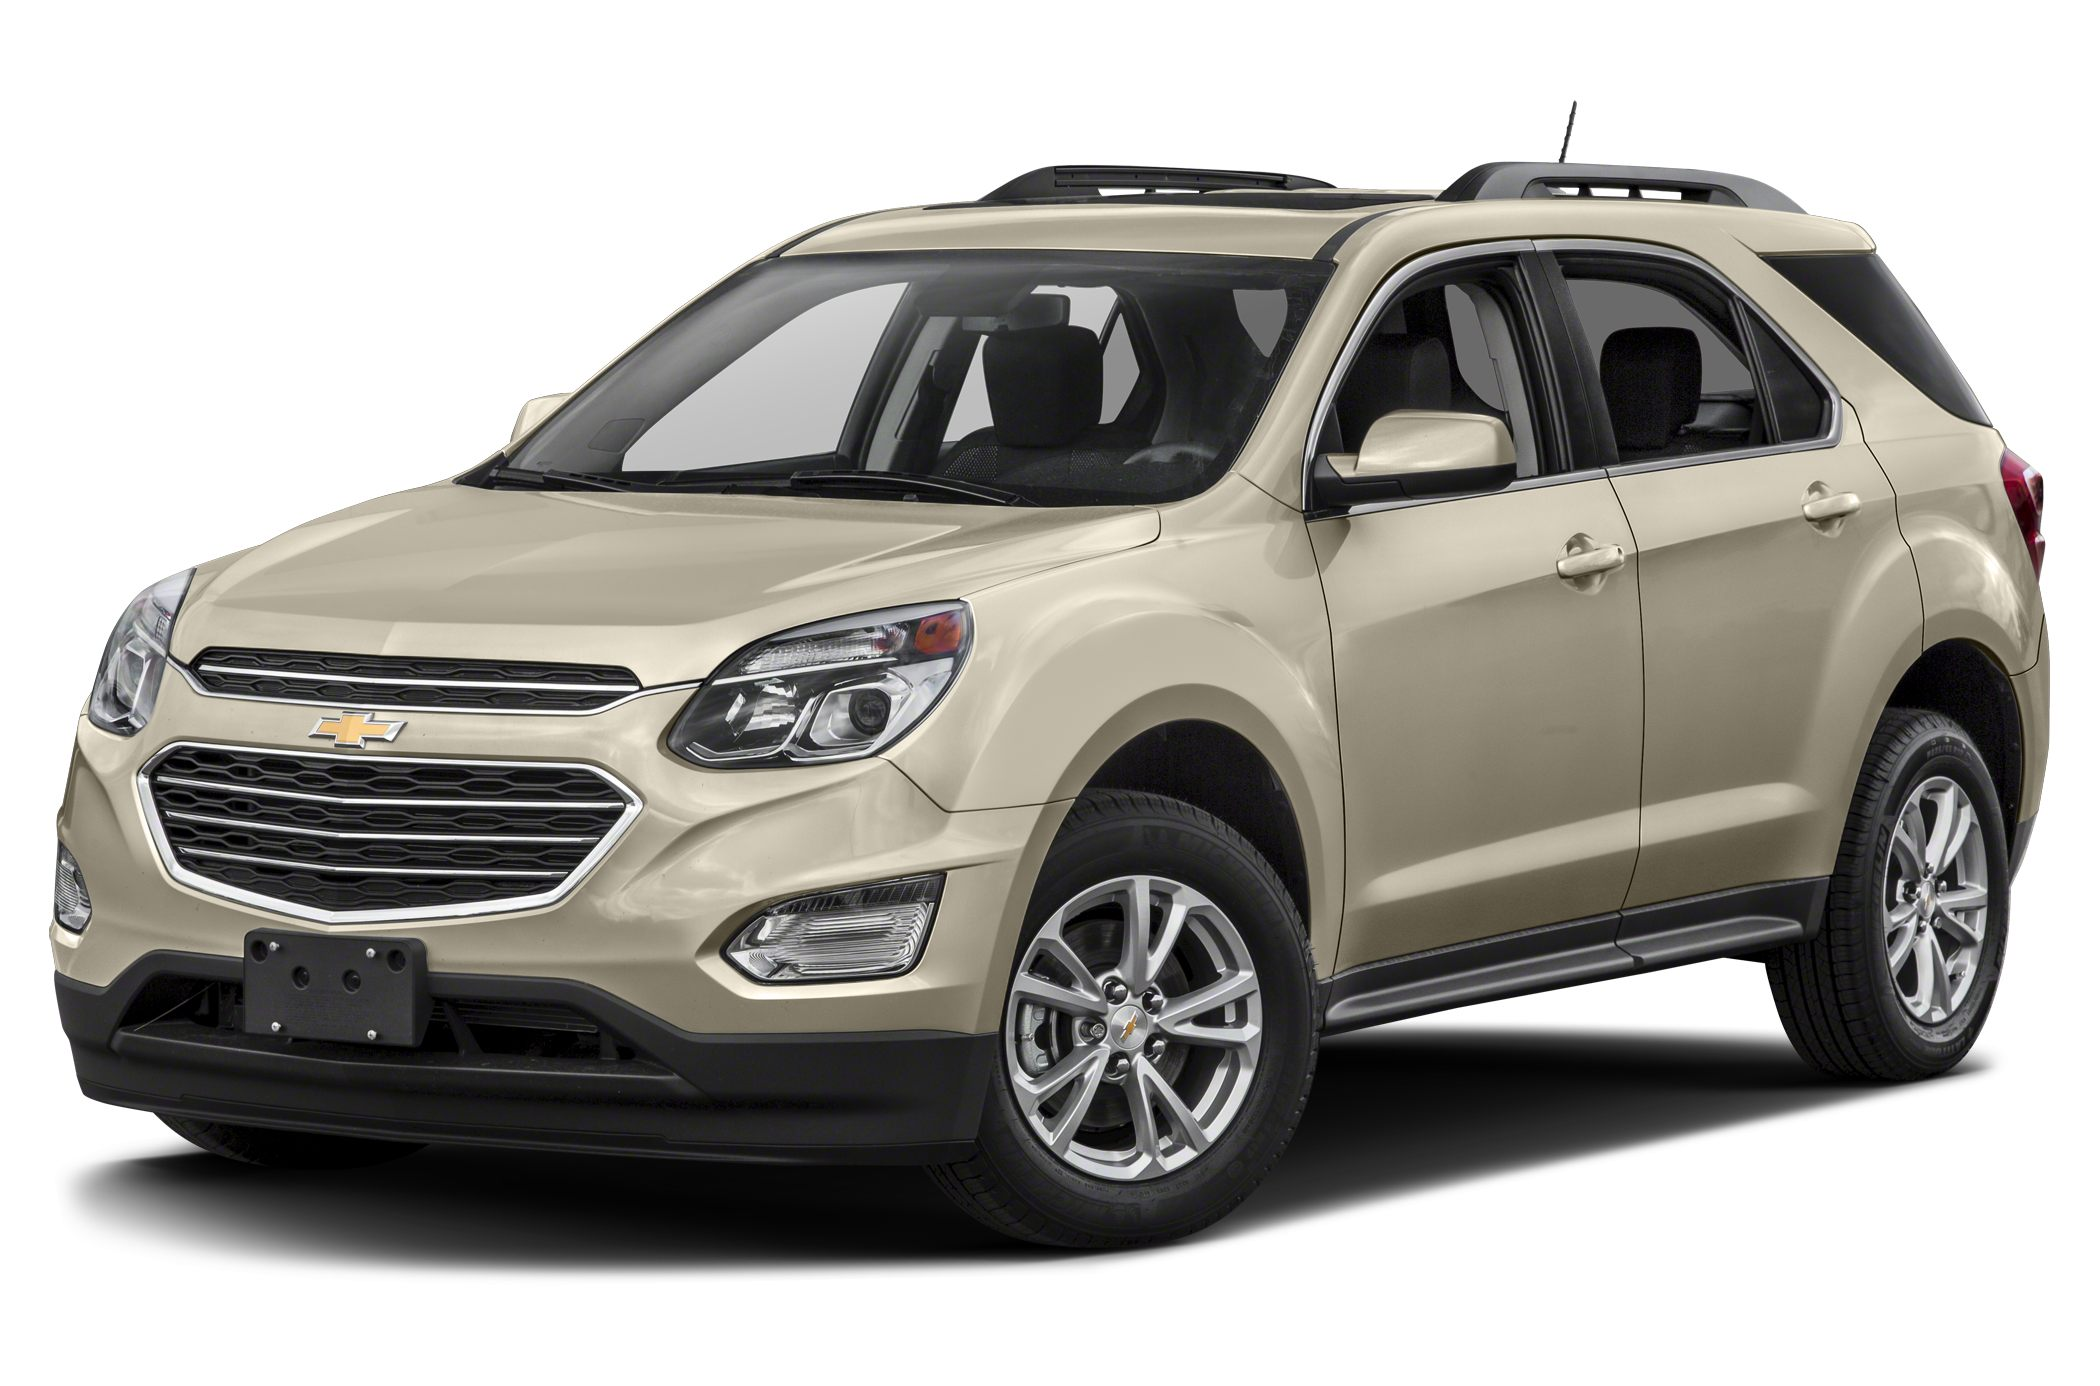 2017 Chevrolet Equinox LT w 1LT All wheel Drive Pricing and Options